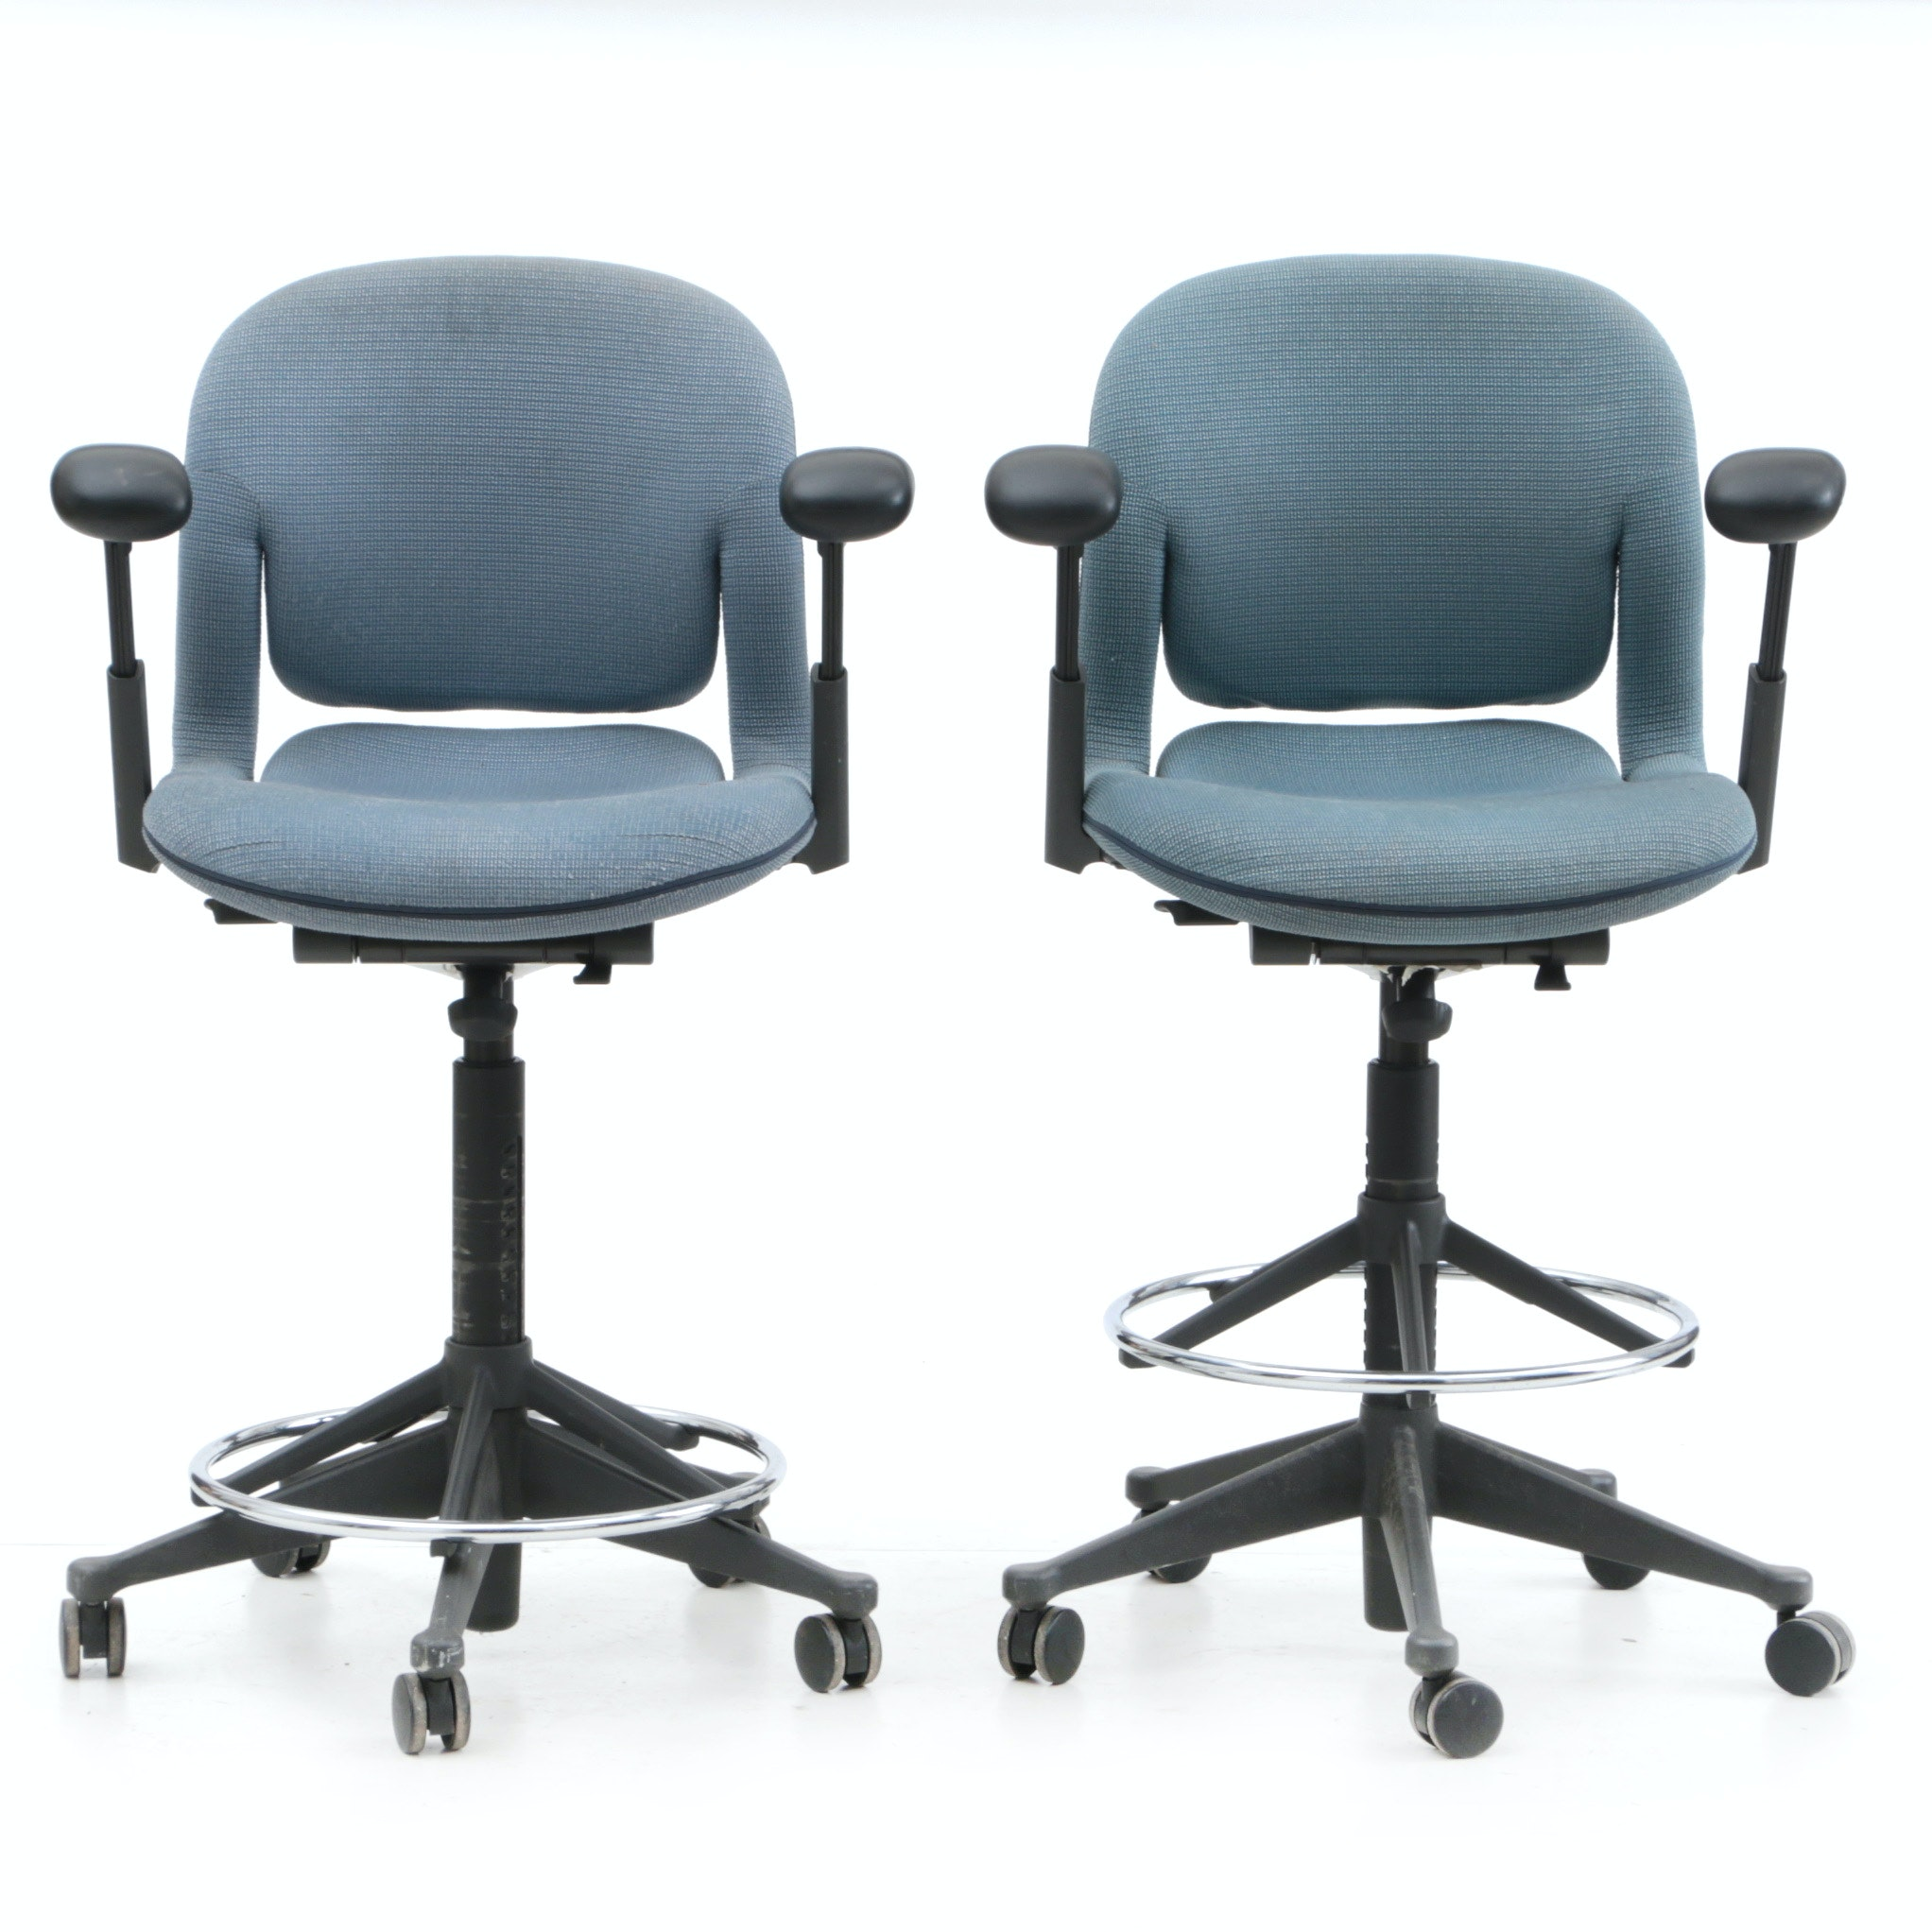 Pair of Herman Miller Counter Height Office Chairs